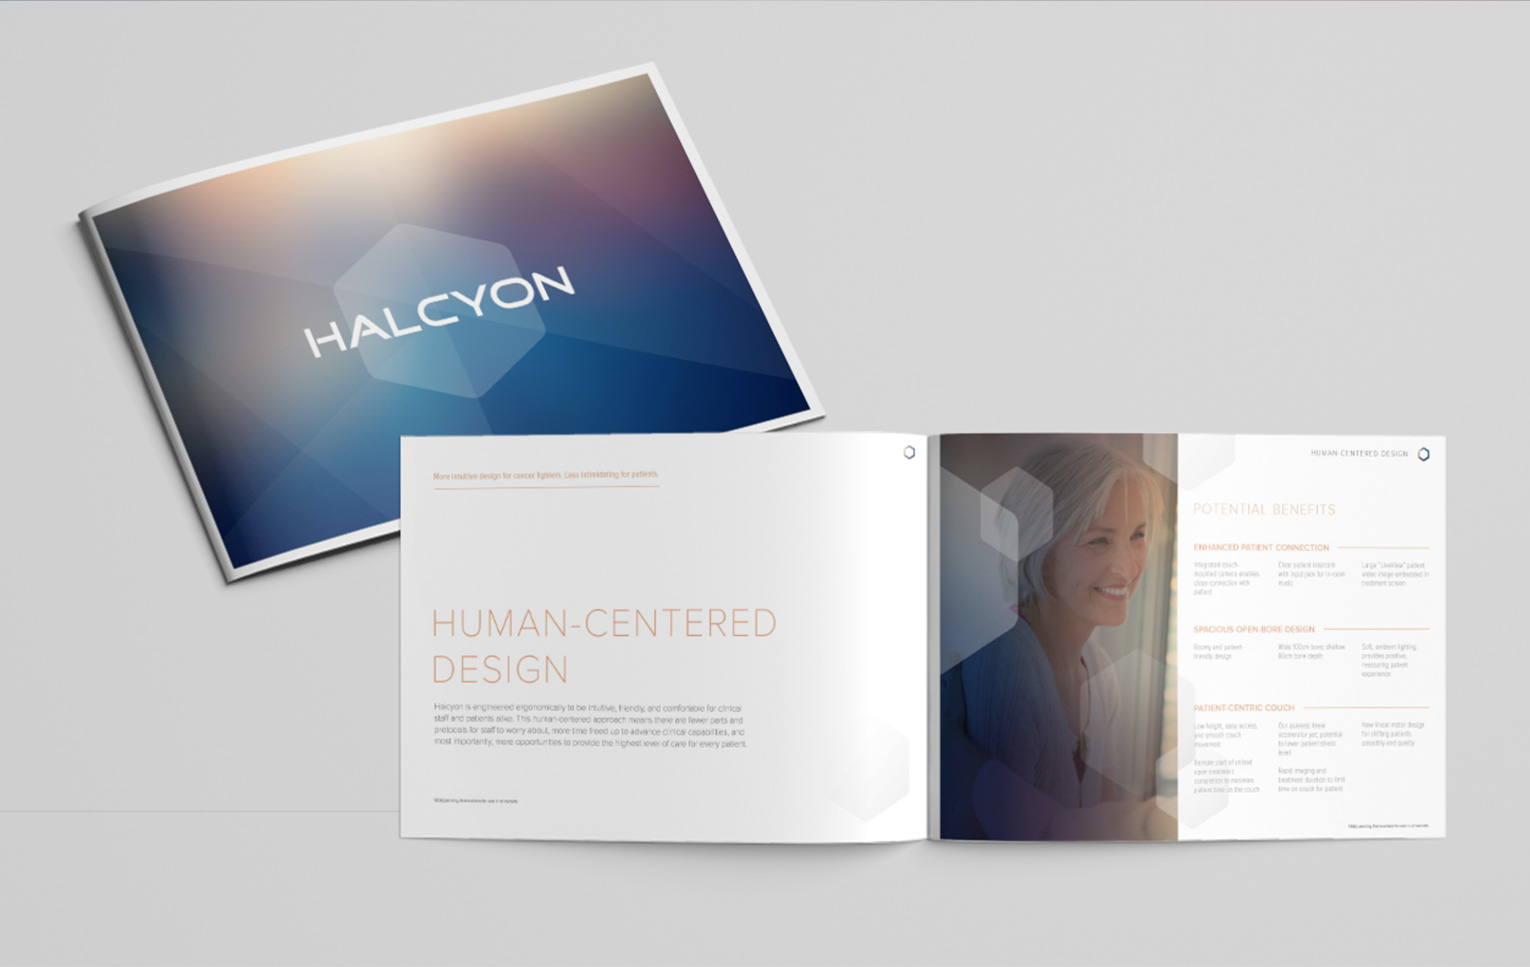 Halcyon brochure - Product launch marketing and branding Mortar Creative Agency Bay Area